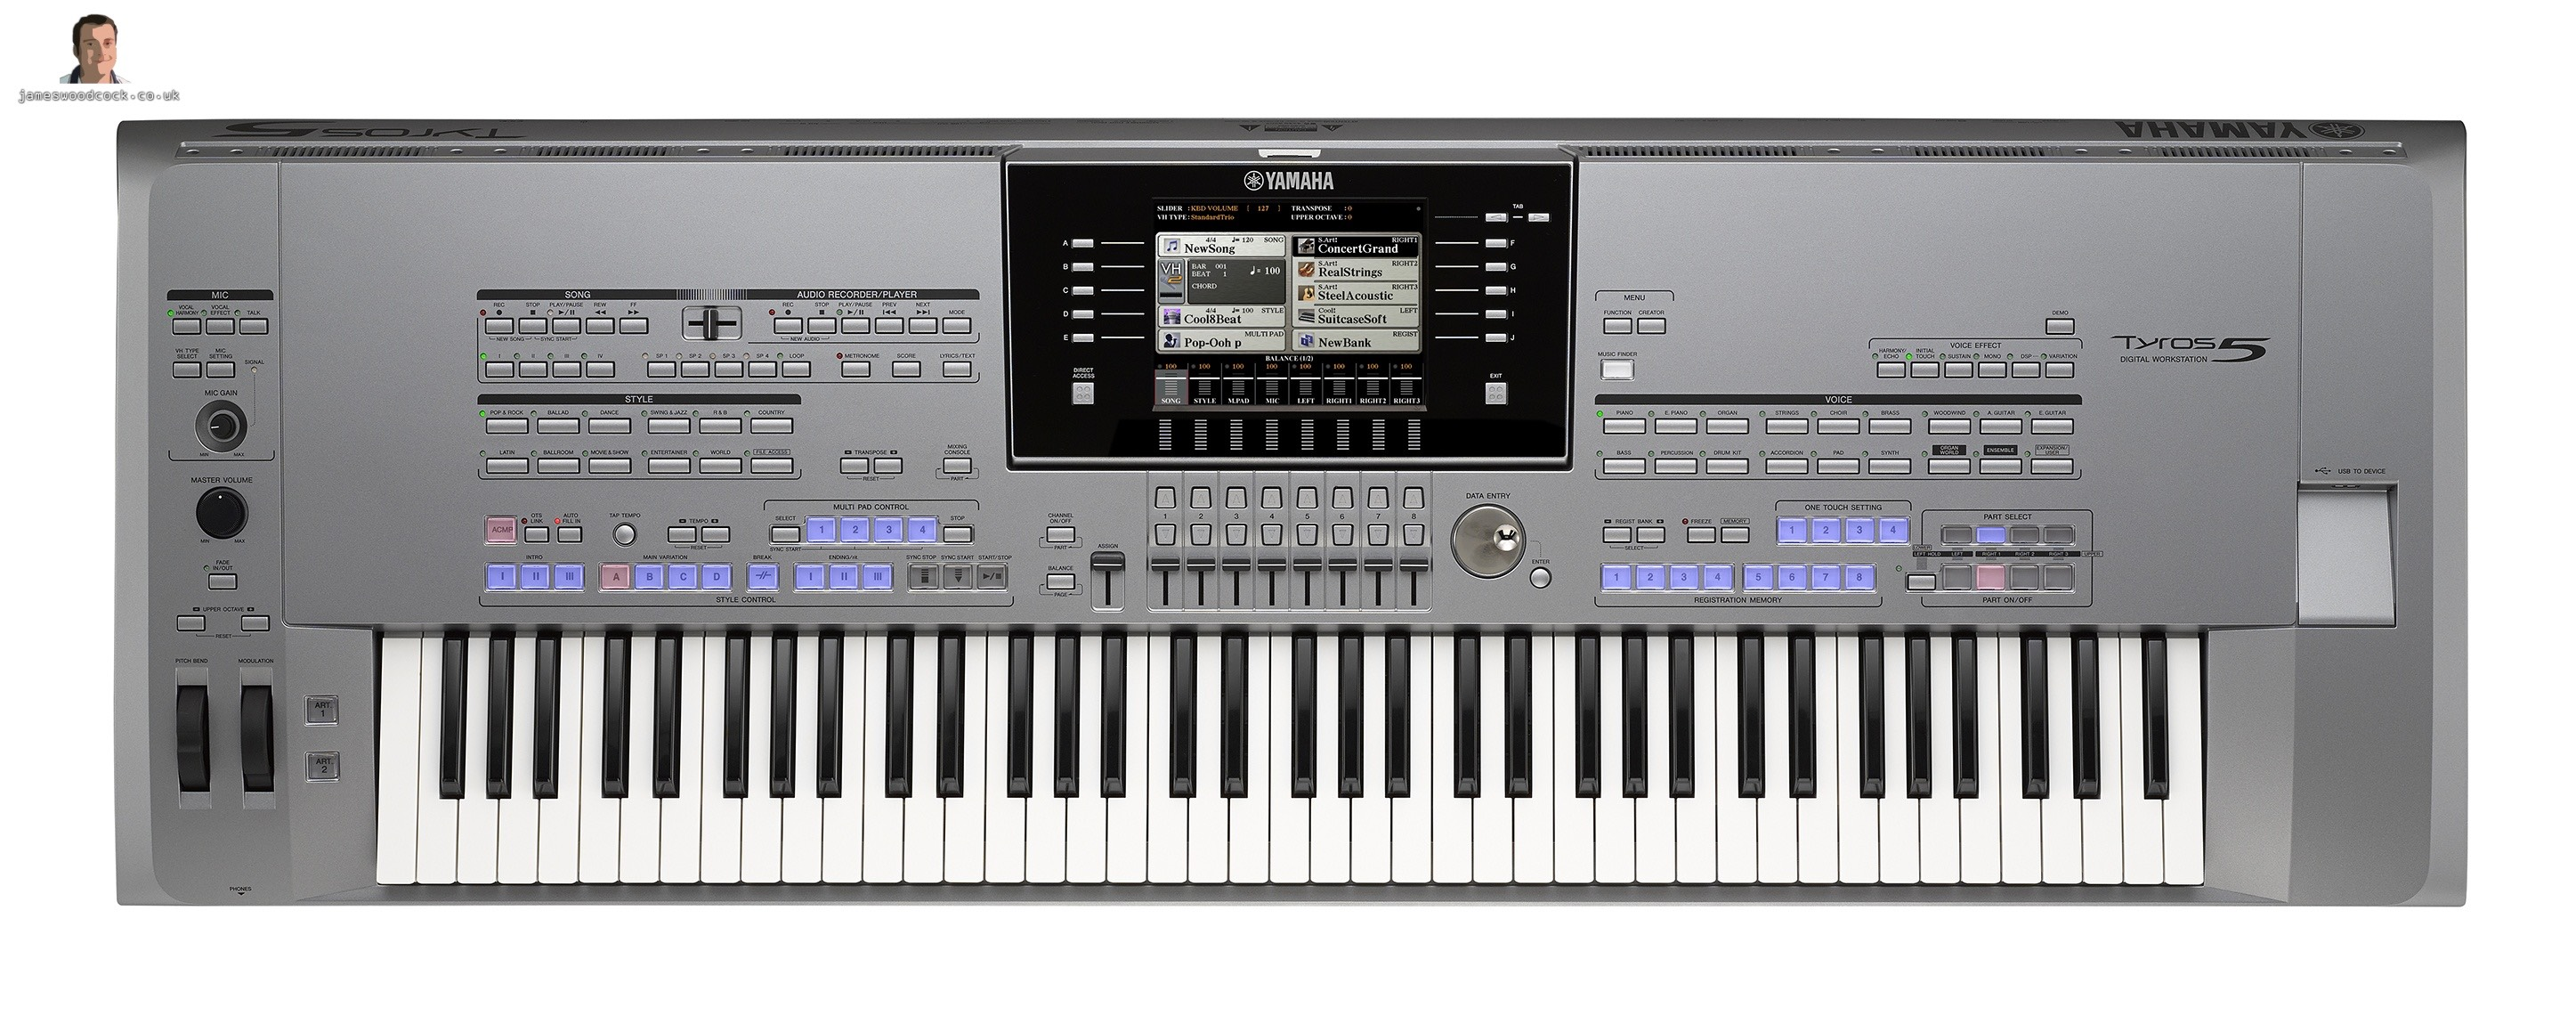 Image Result For Yamaha Keyboard For Pc